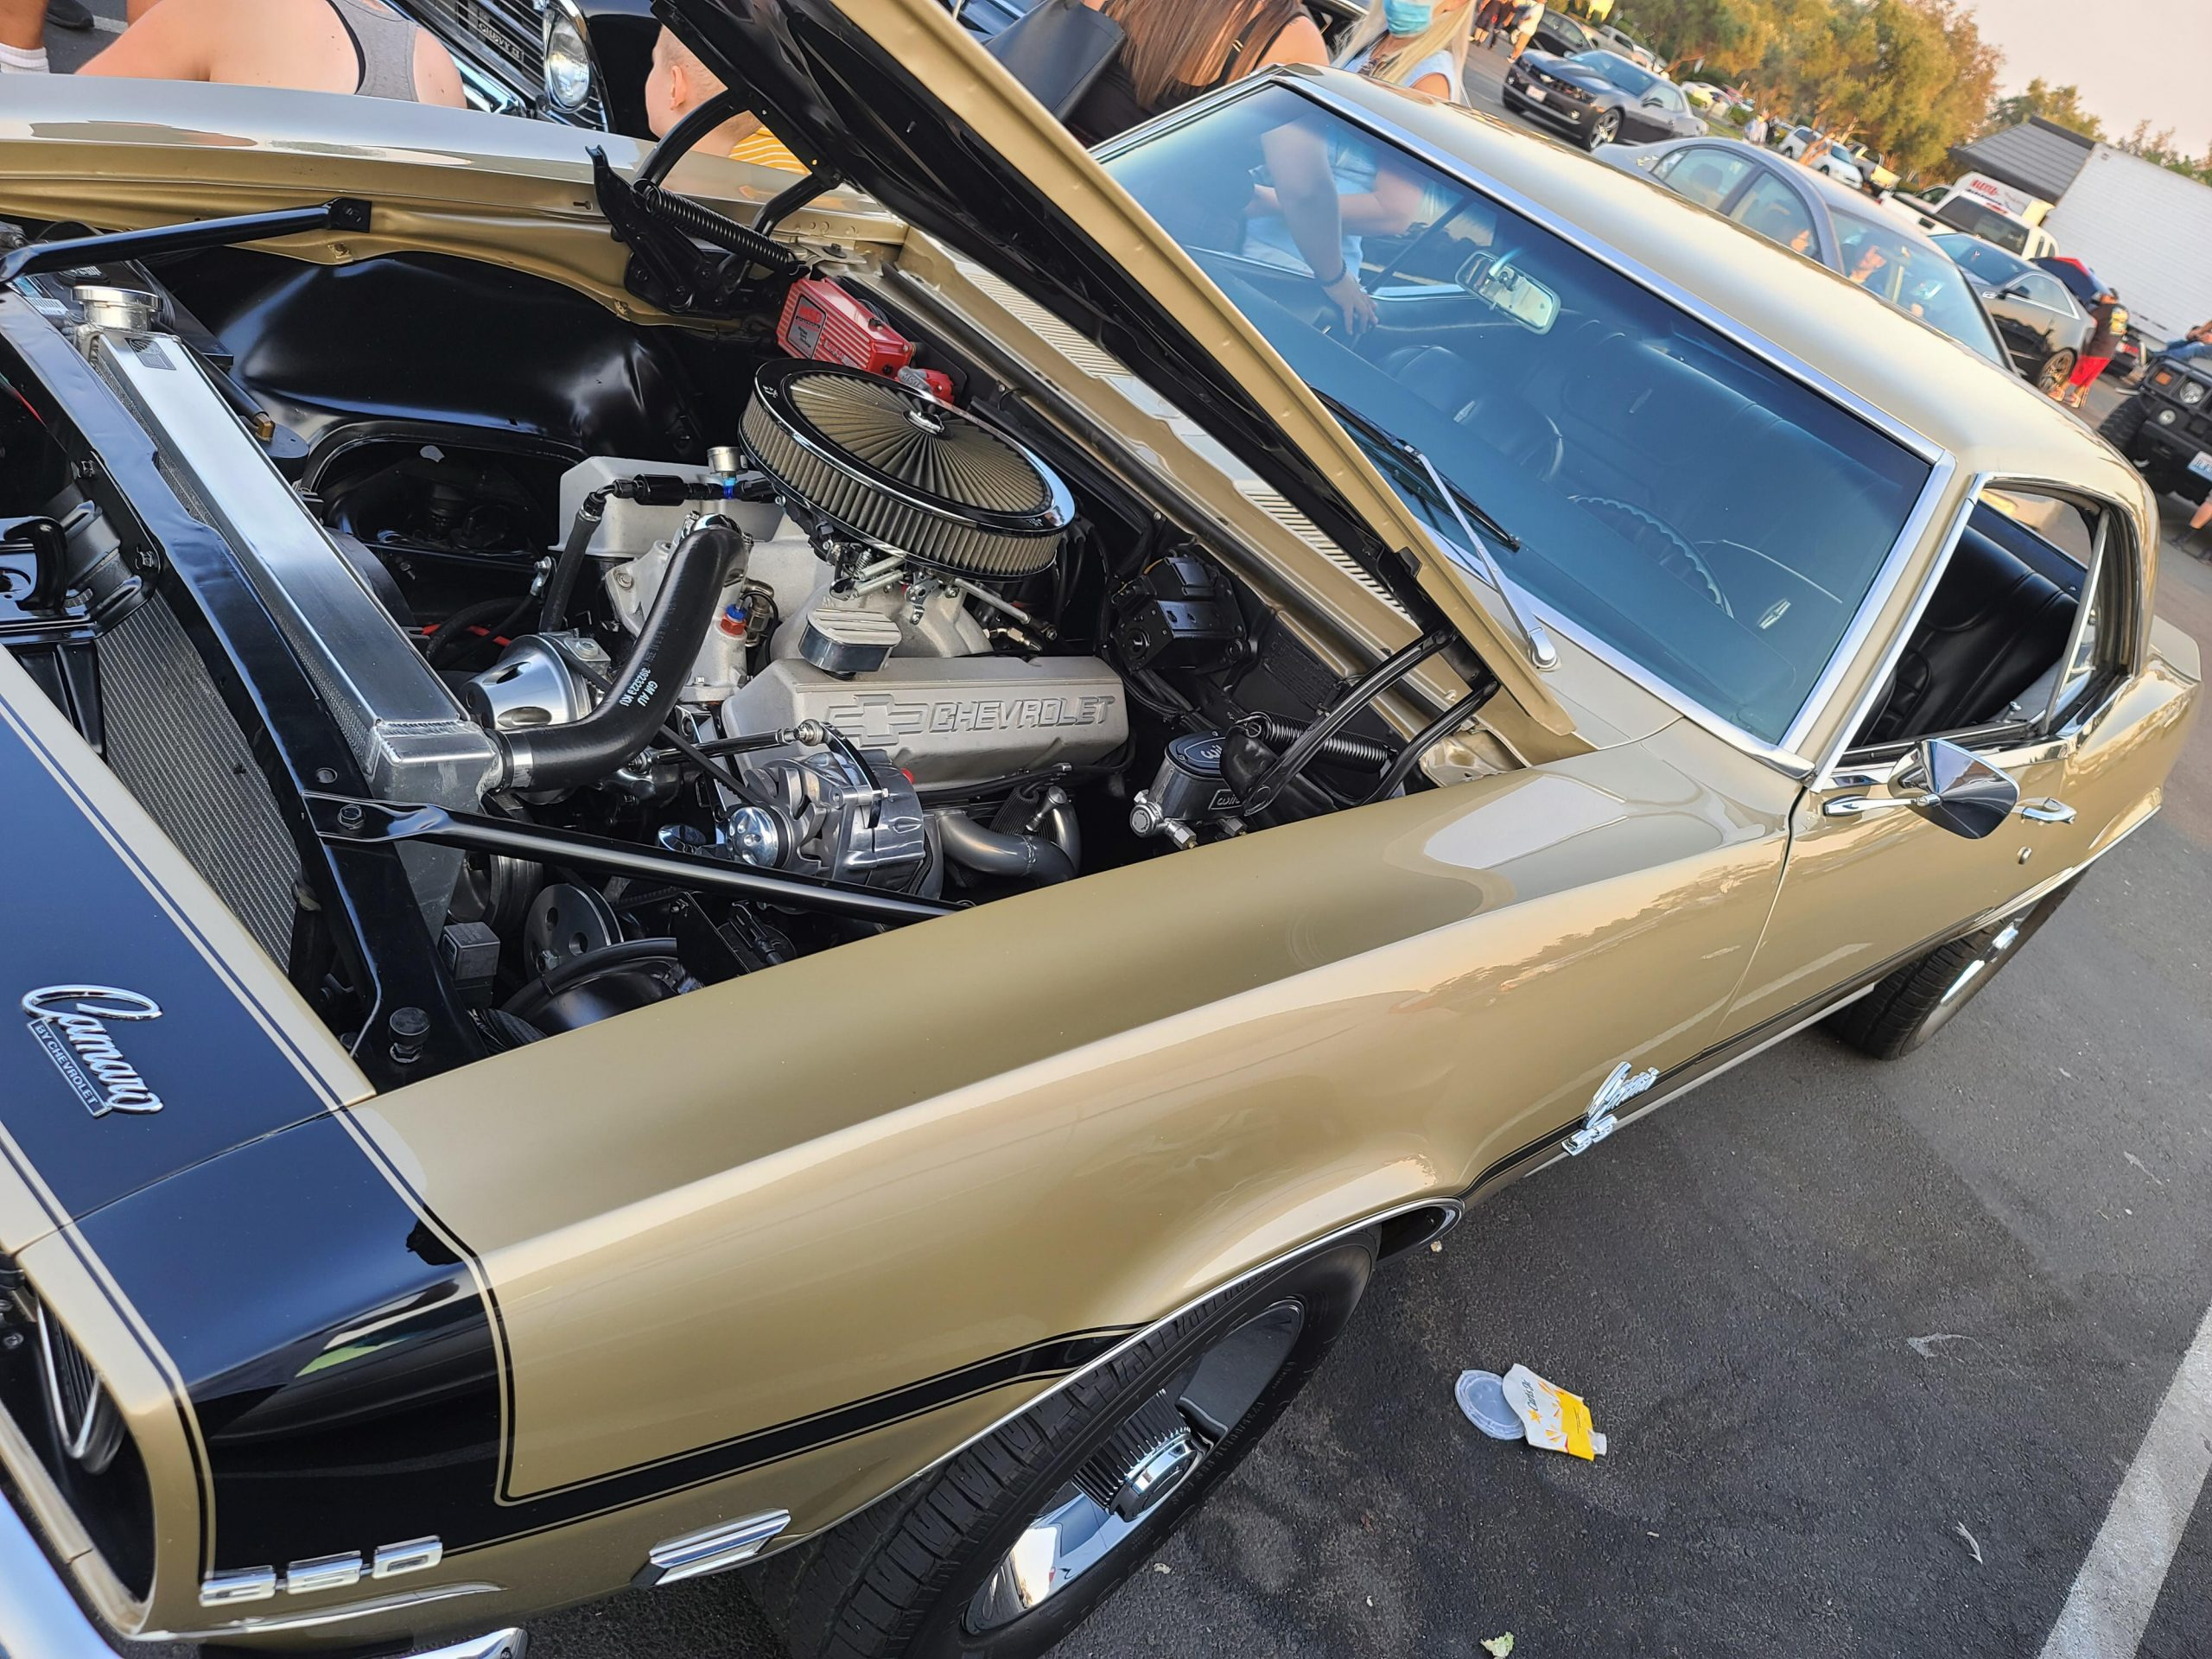 Under the hood shot of my uncle's 1968 Camaro.